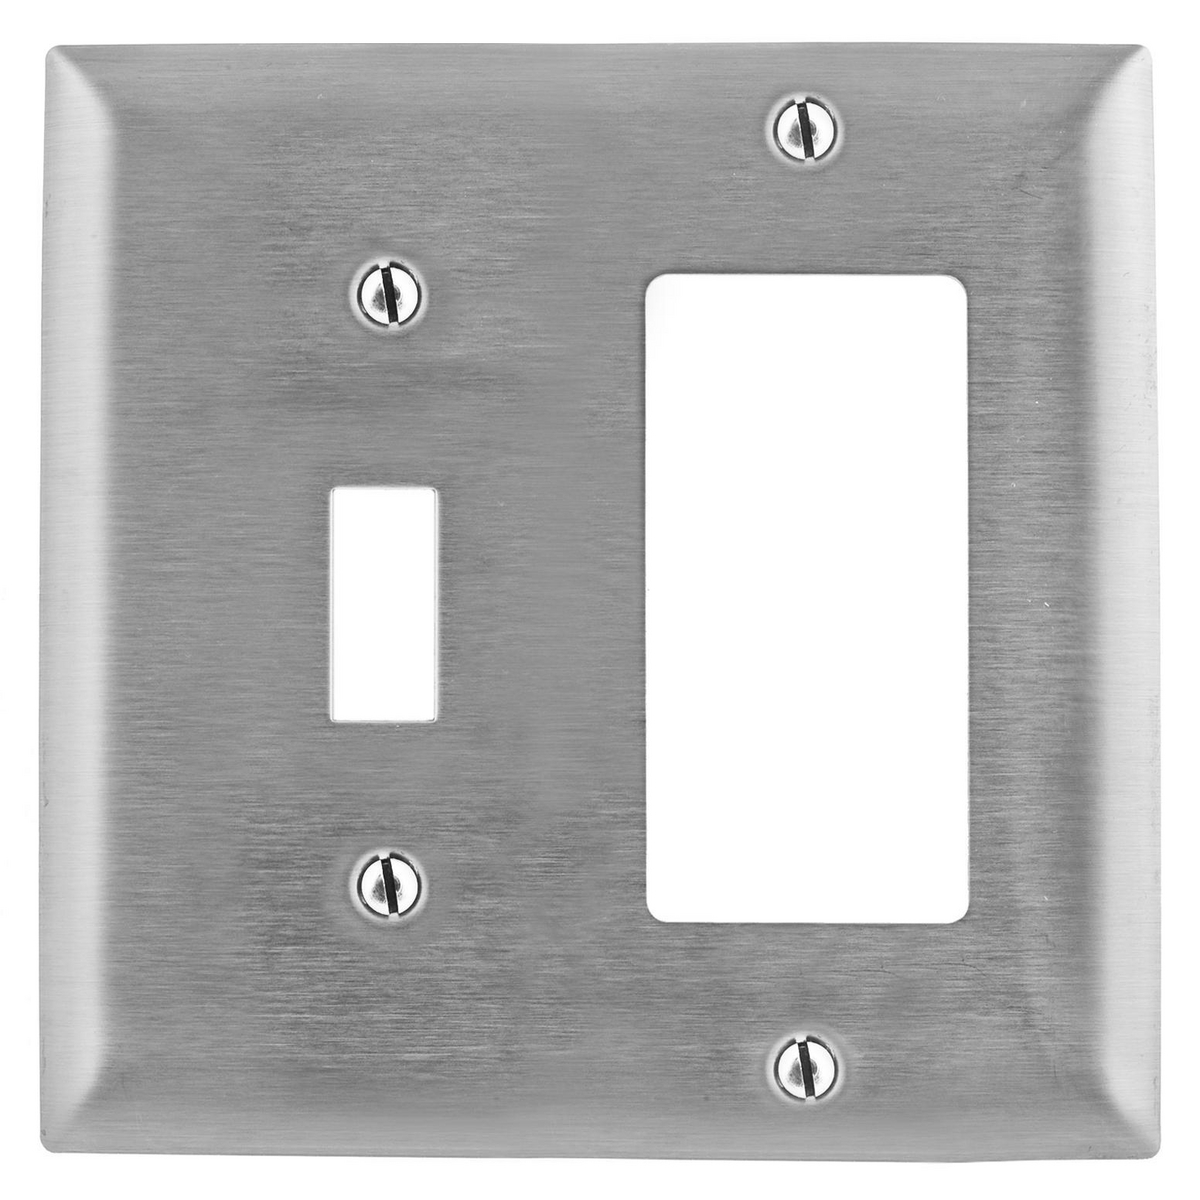 Hubbell SS126 2-Gang Stainless Steel 1-Toggle 1-Decorator Switch Screw Mount Combination Wallplate